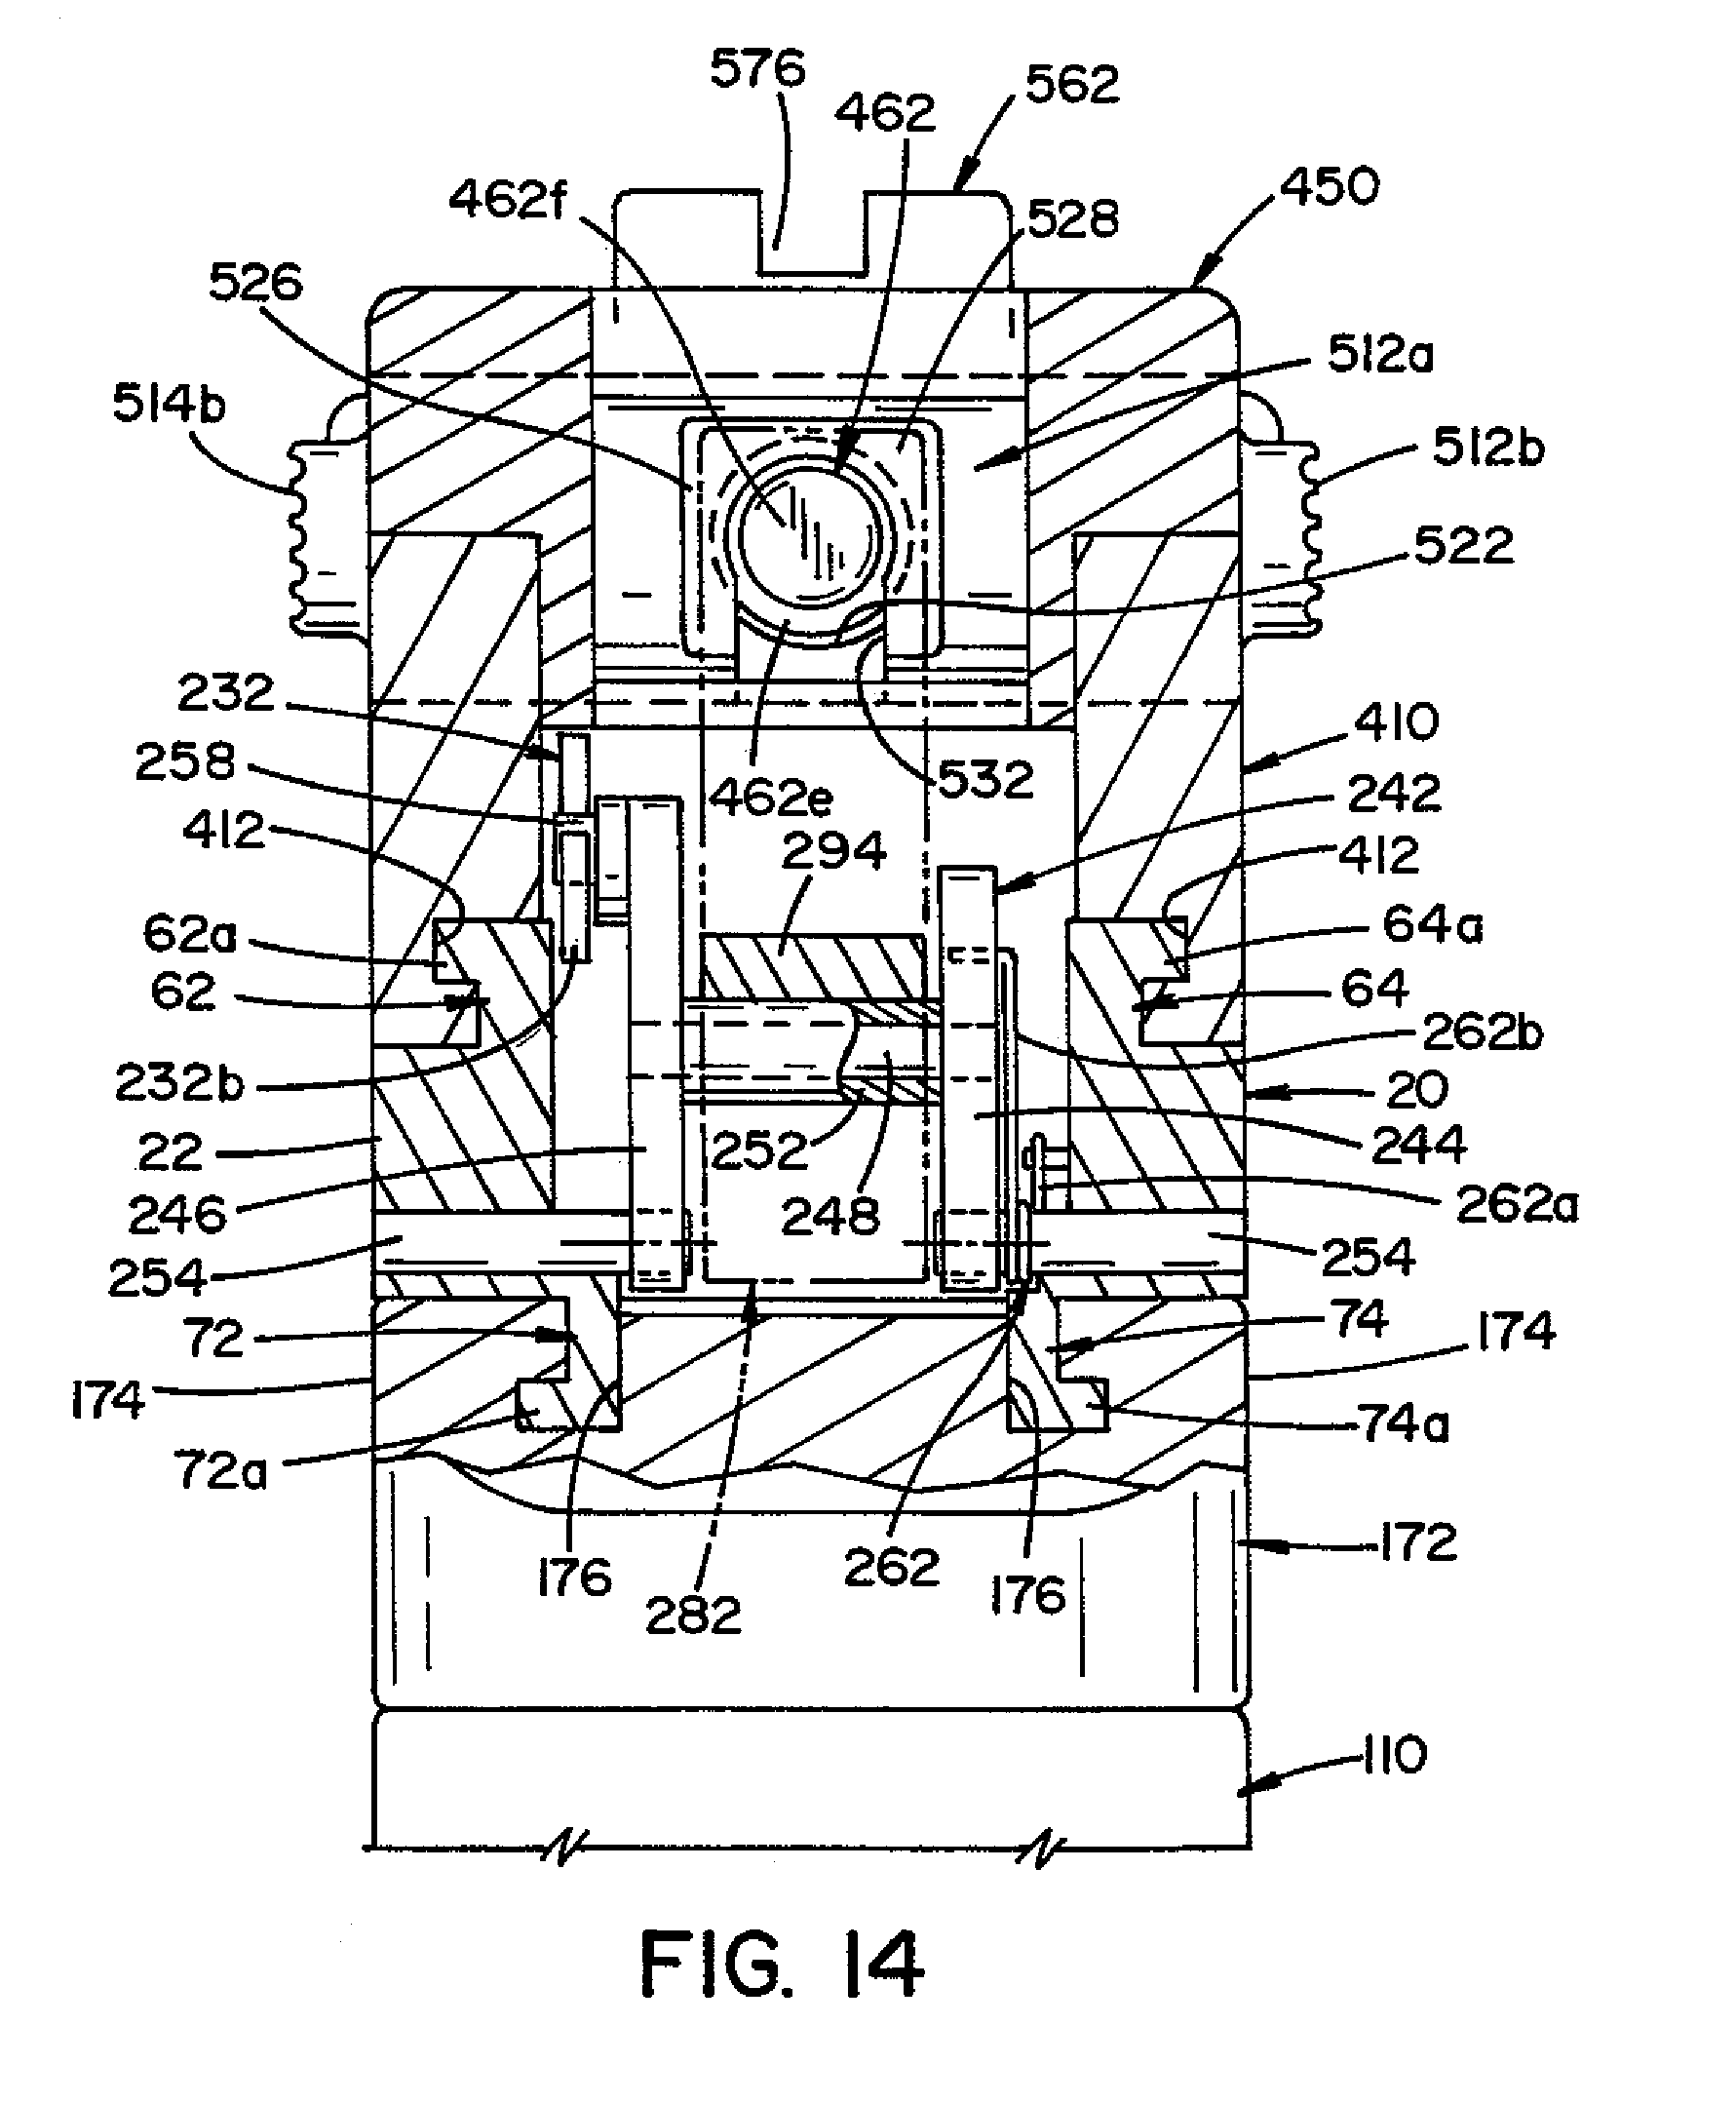 7f36c Chrysler Pacifica Fuse Box Diagram Image Details Wiring Library